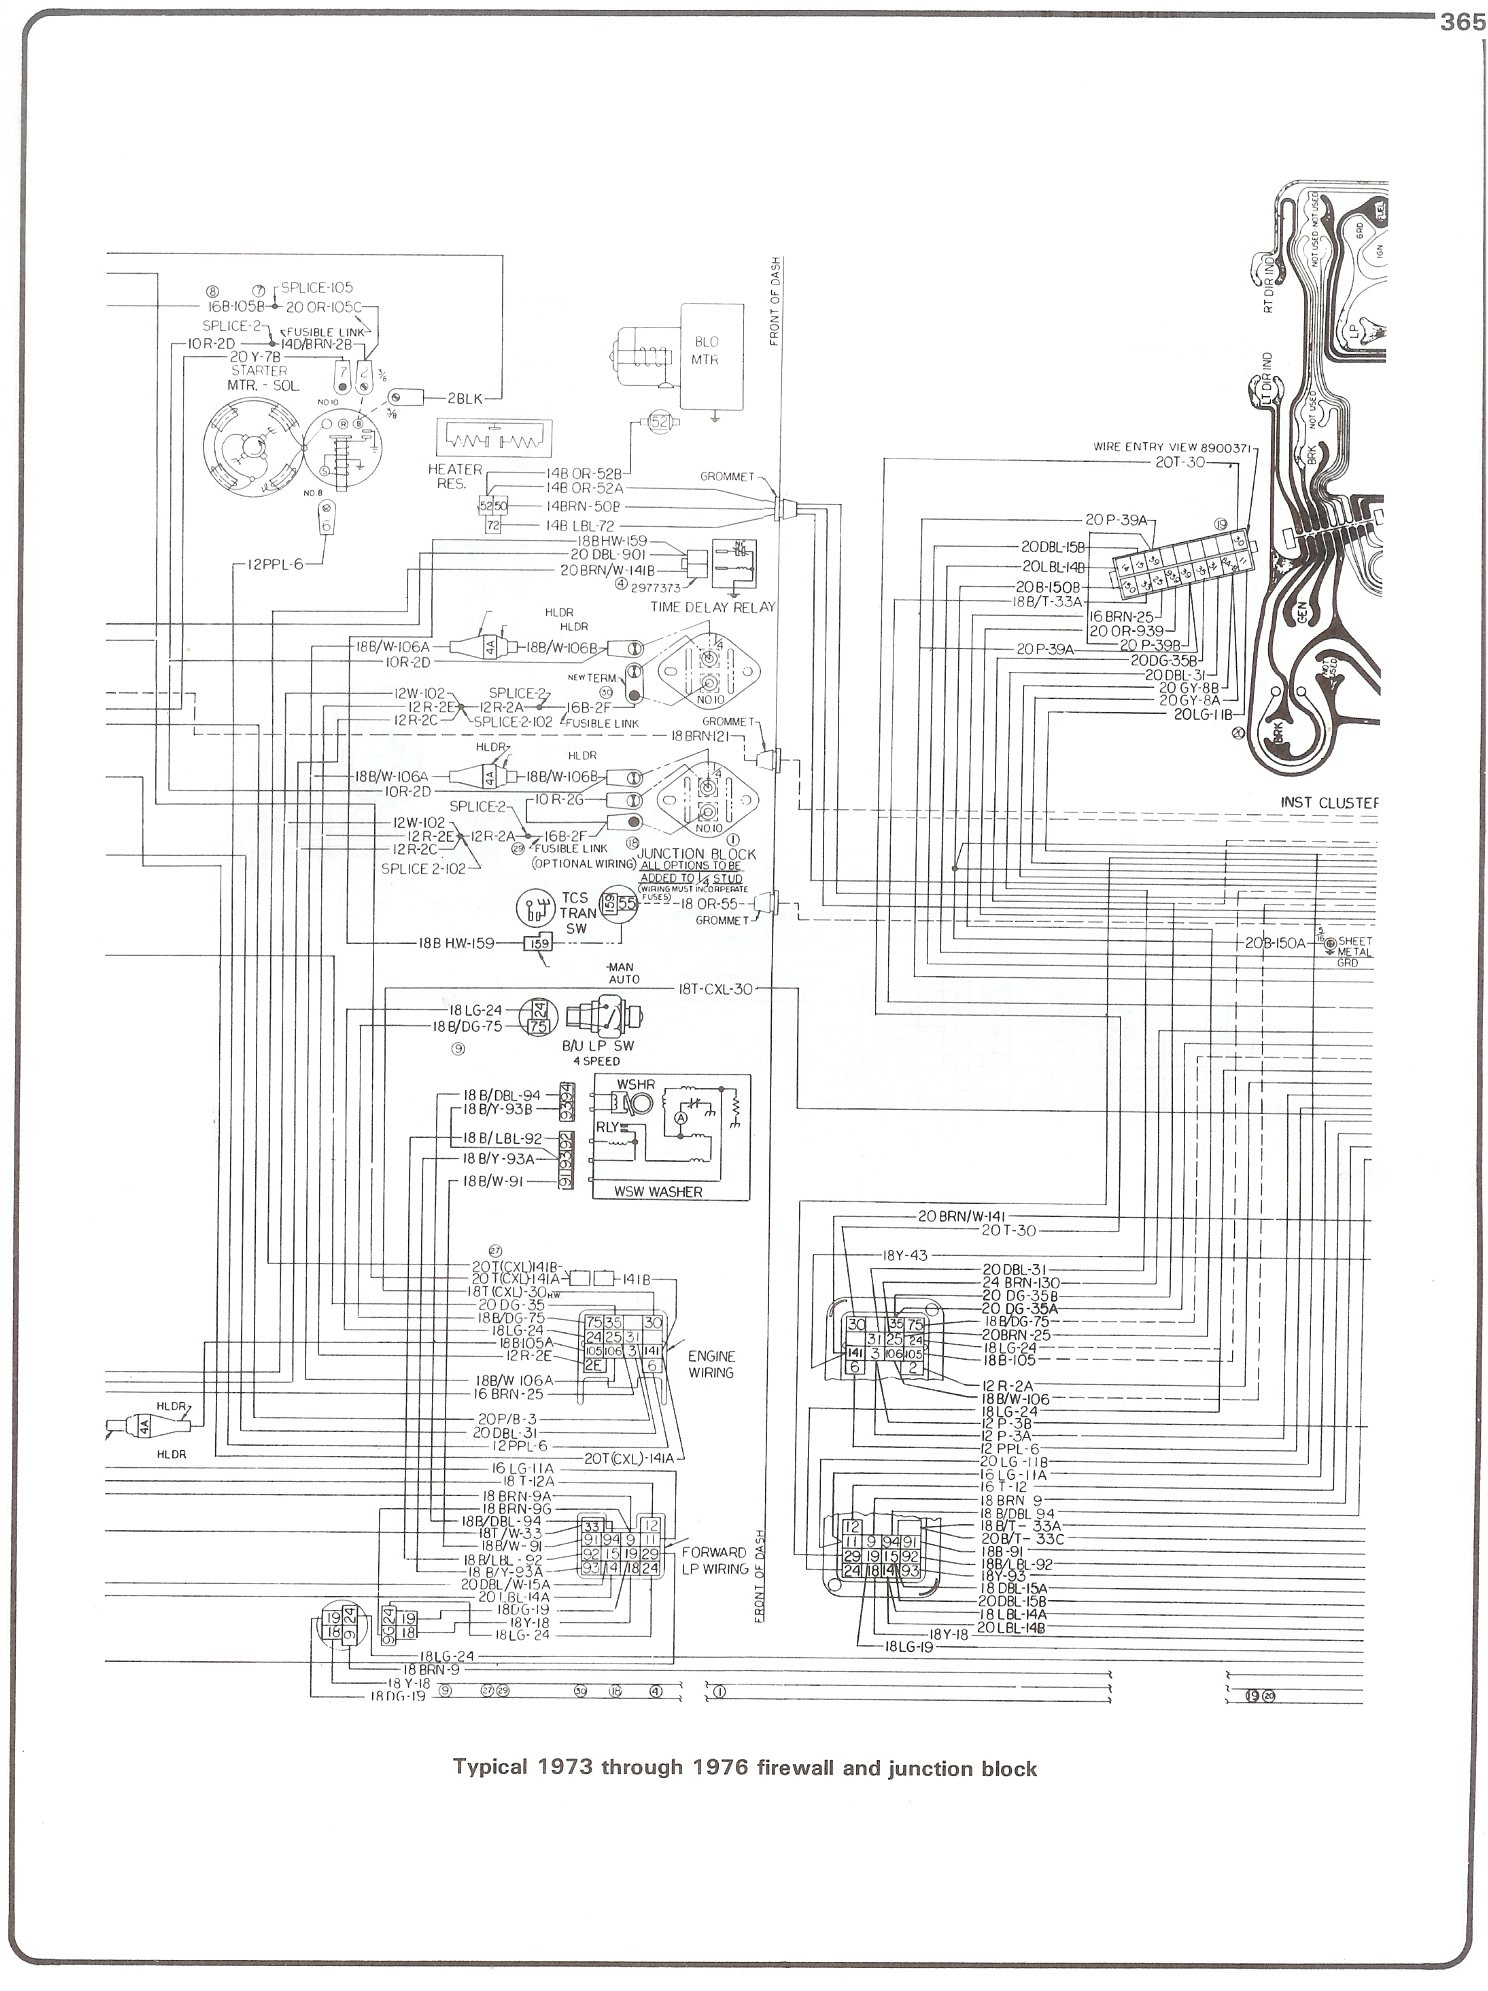 1988 Chevy Suburban Fuse Box Diagram Opinions About Wiring K1500 Electrical Diagrams Only Page 2 Truck Forum 1989 Specs Starter